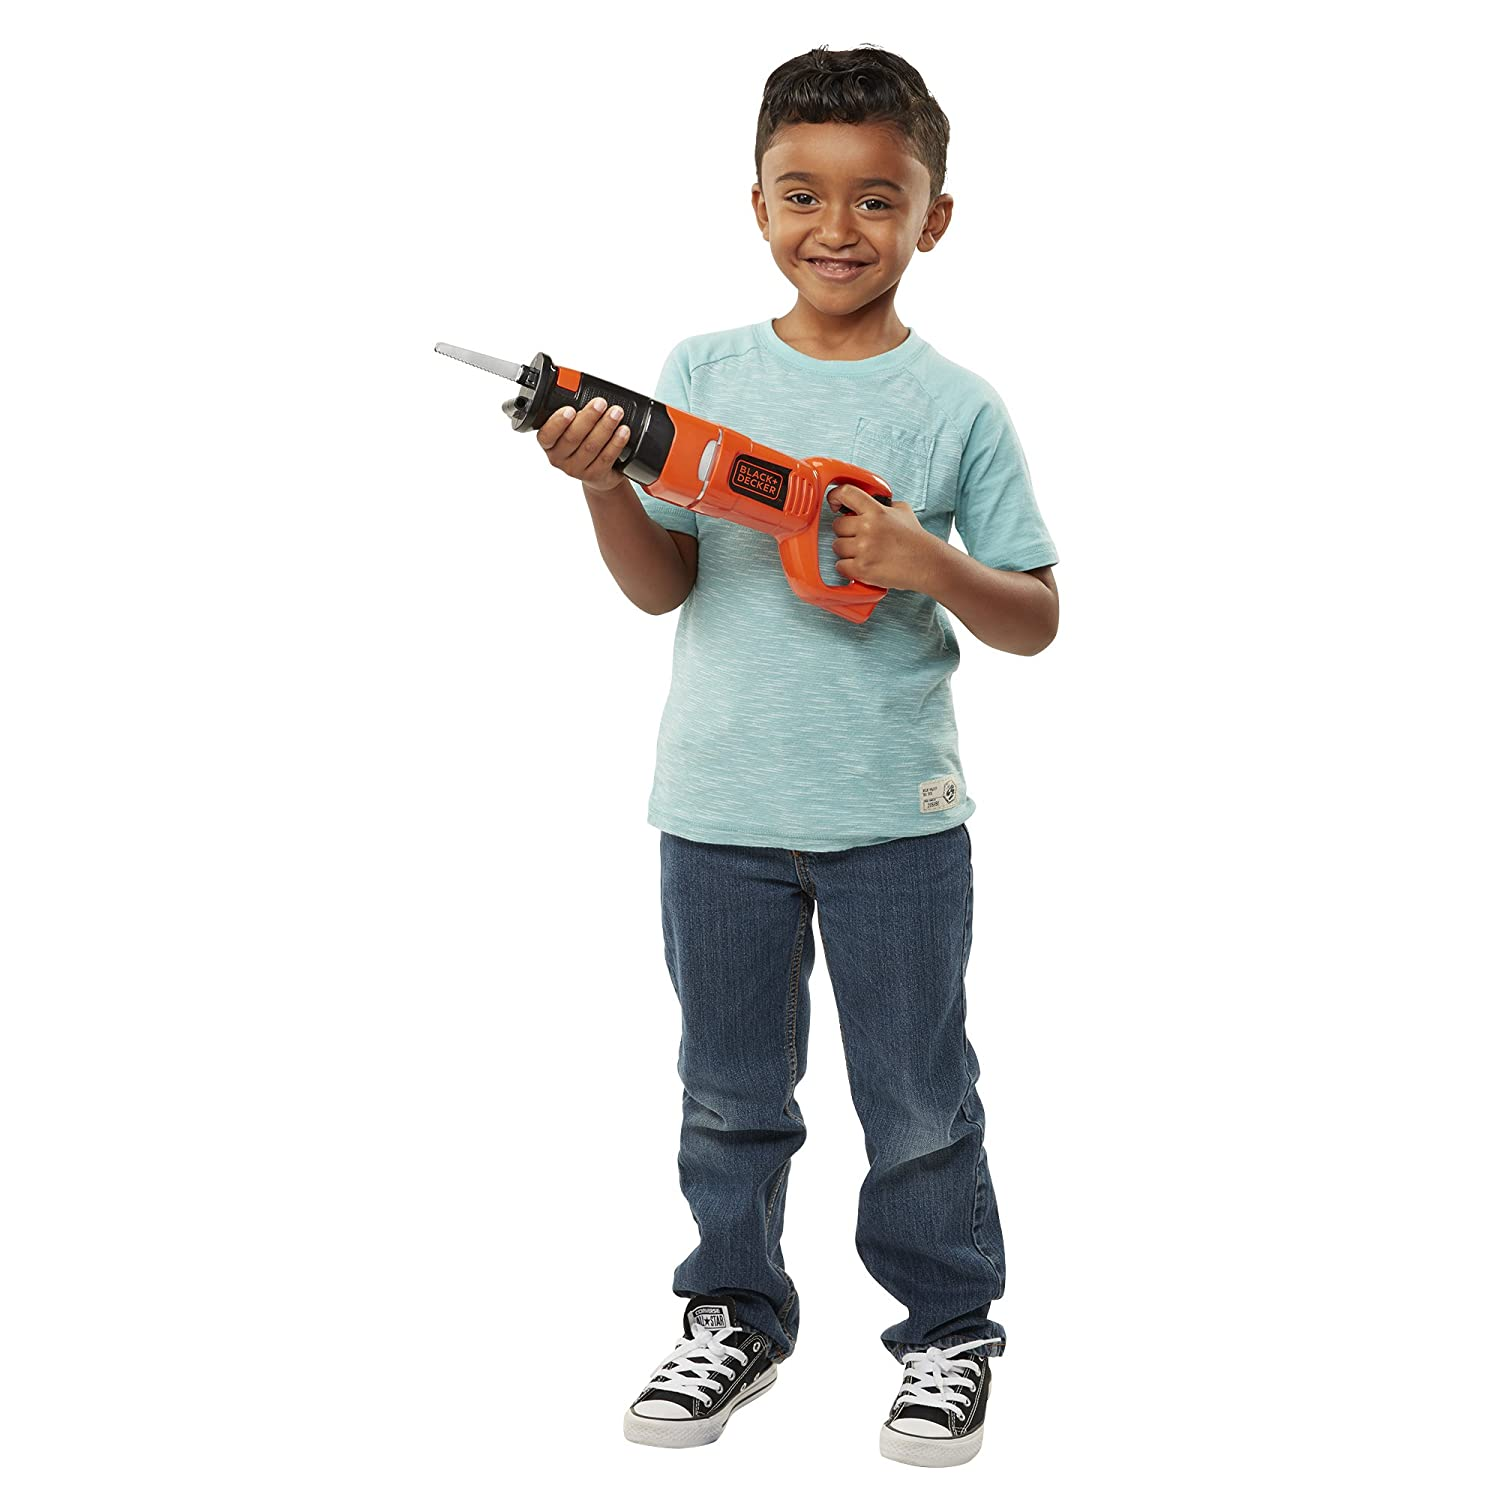 BLACK+DECKER Jr Jr. Reciprocating Saw Role Play Tools